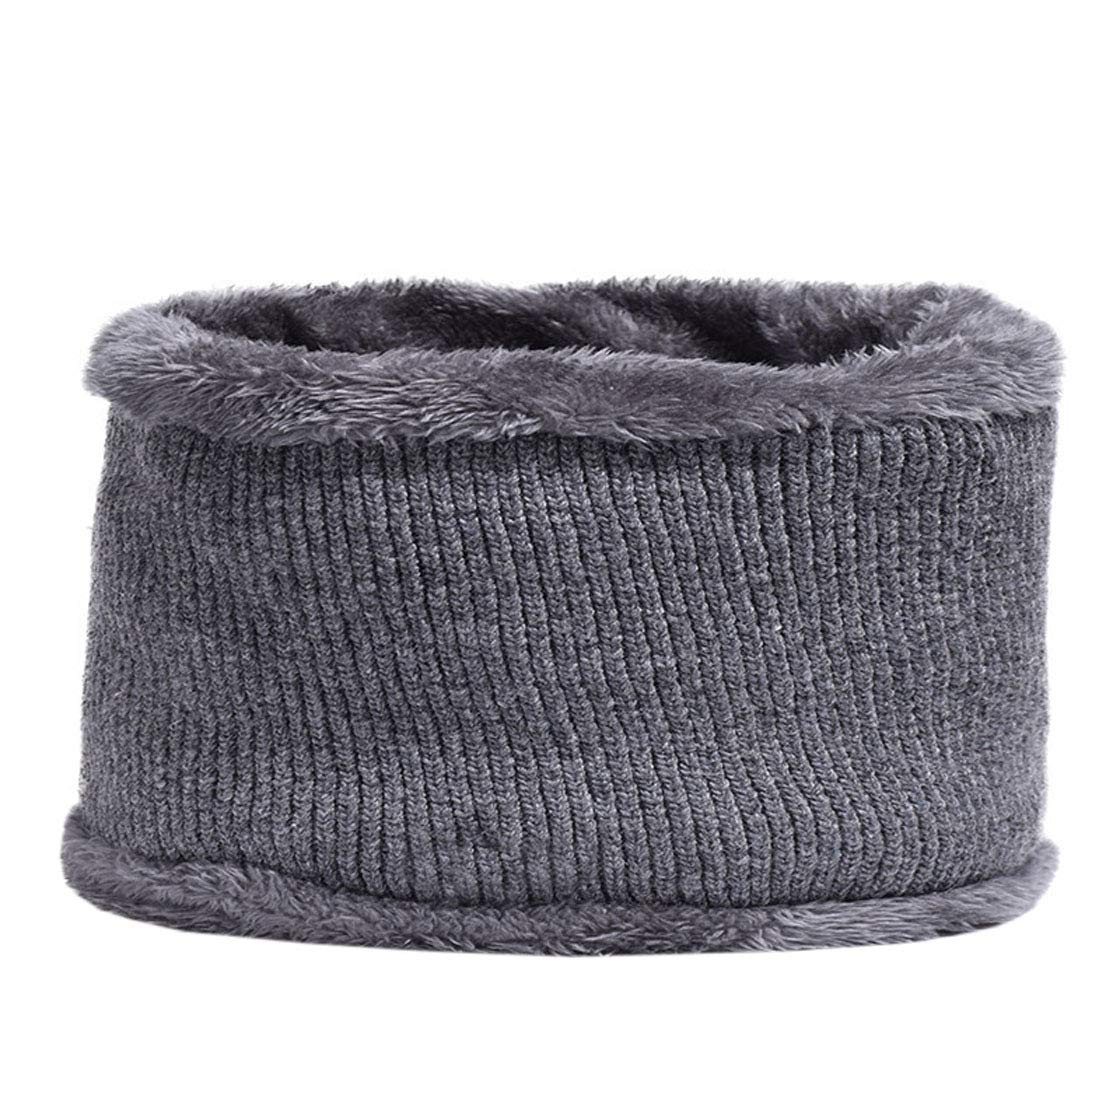 ACVIP Men's Fleece Lining Cold Weather Neck Gaiter Scarf (grey)